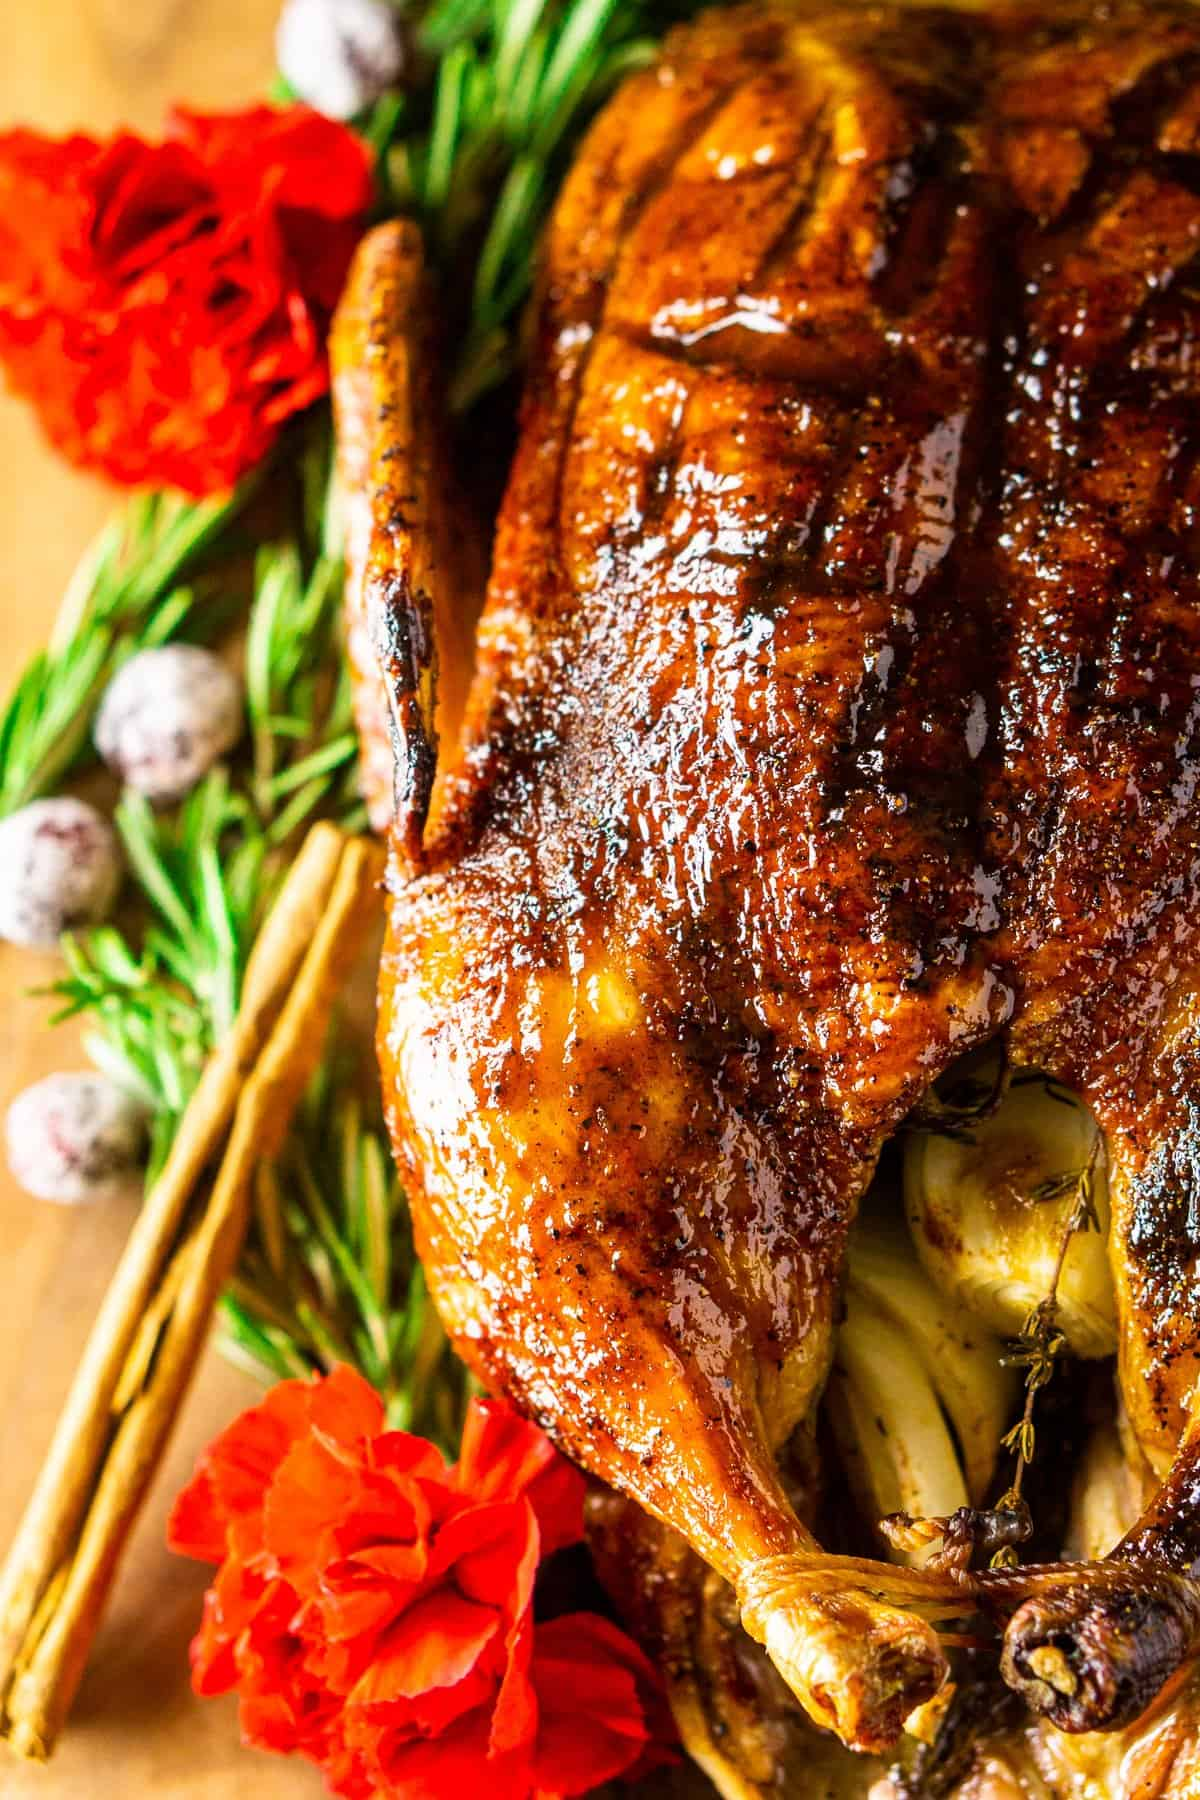 The roasted holiday duck on a bed of rosemary with cinnamon sticks and flowers to the side.